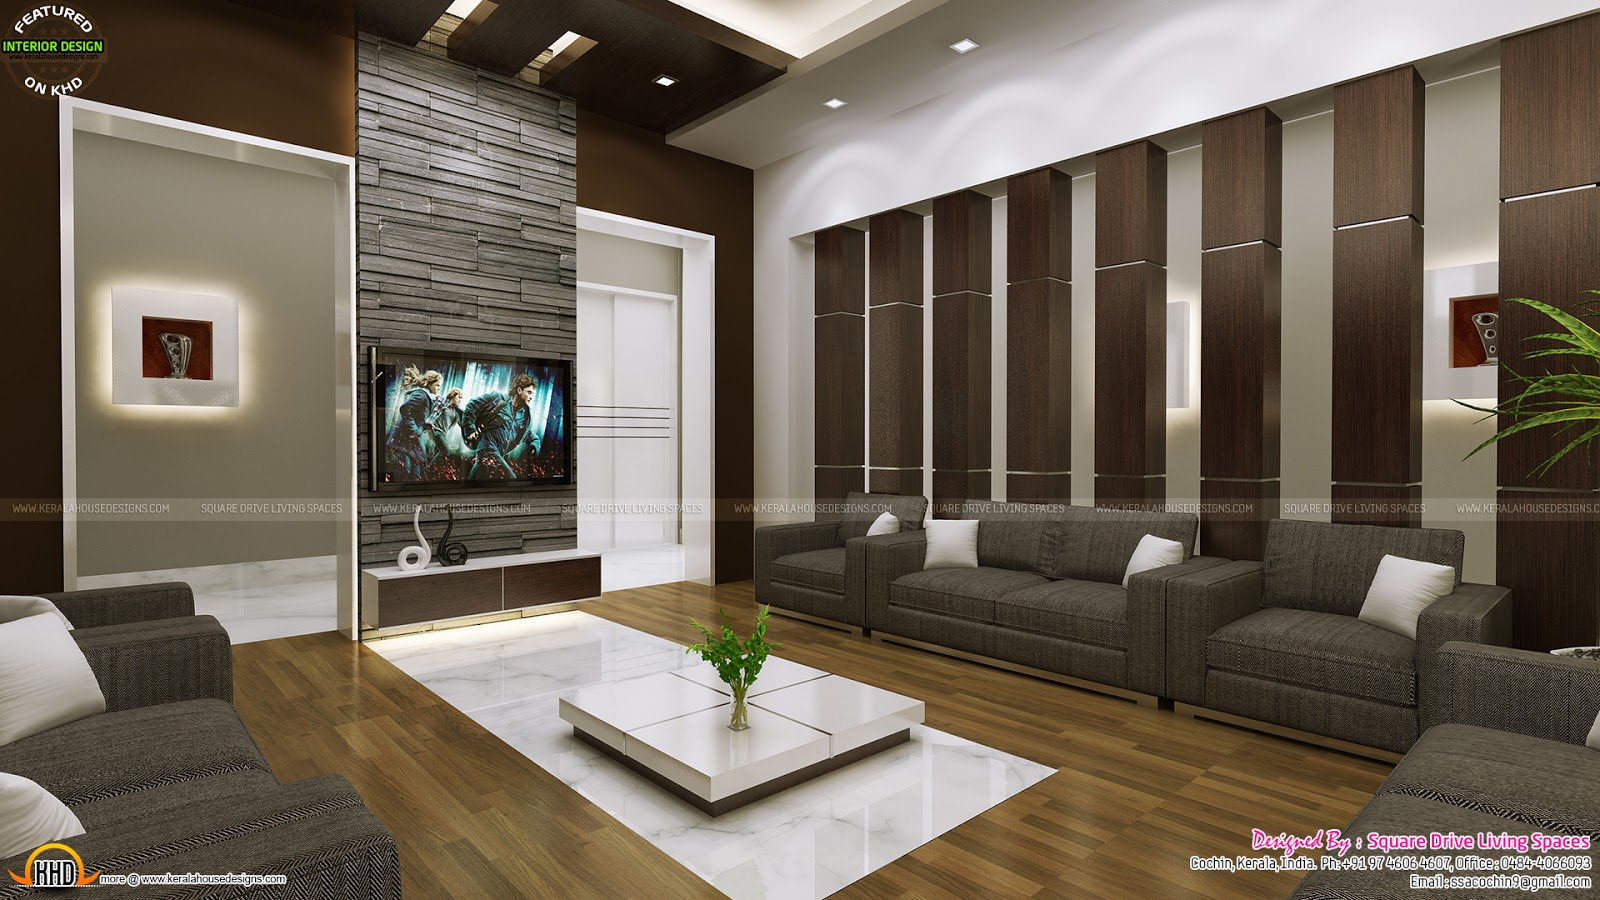 Attractive home interior ideas kerala home design and for My home interior design